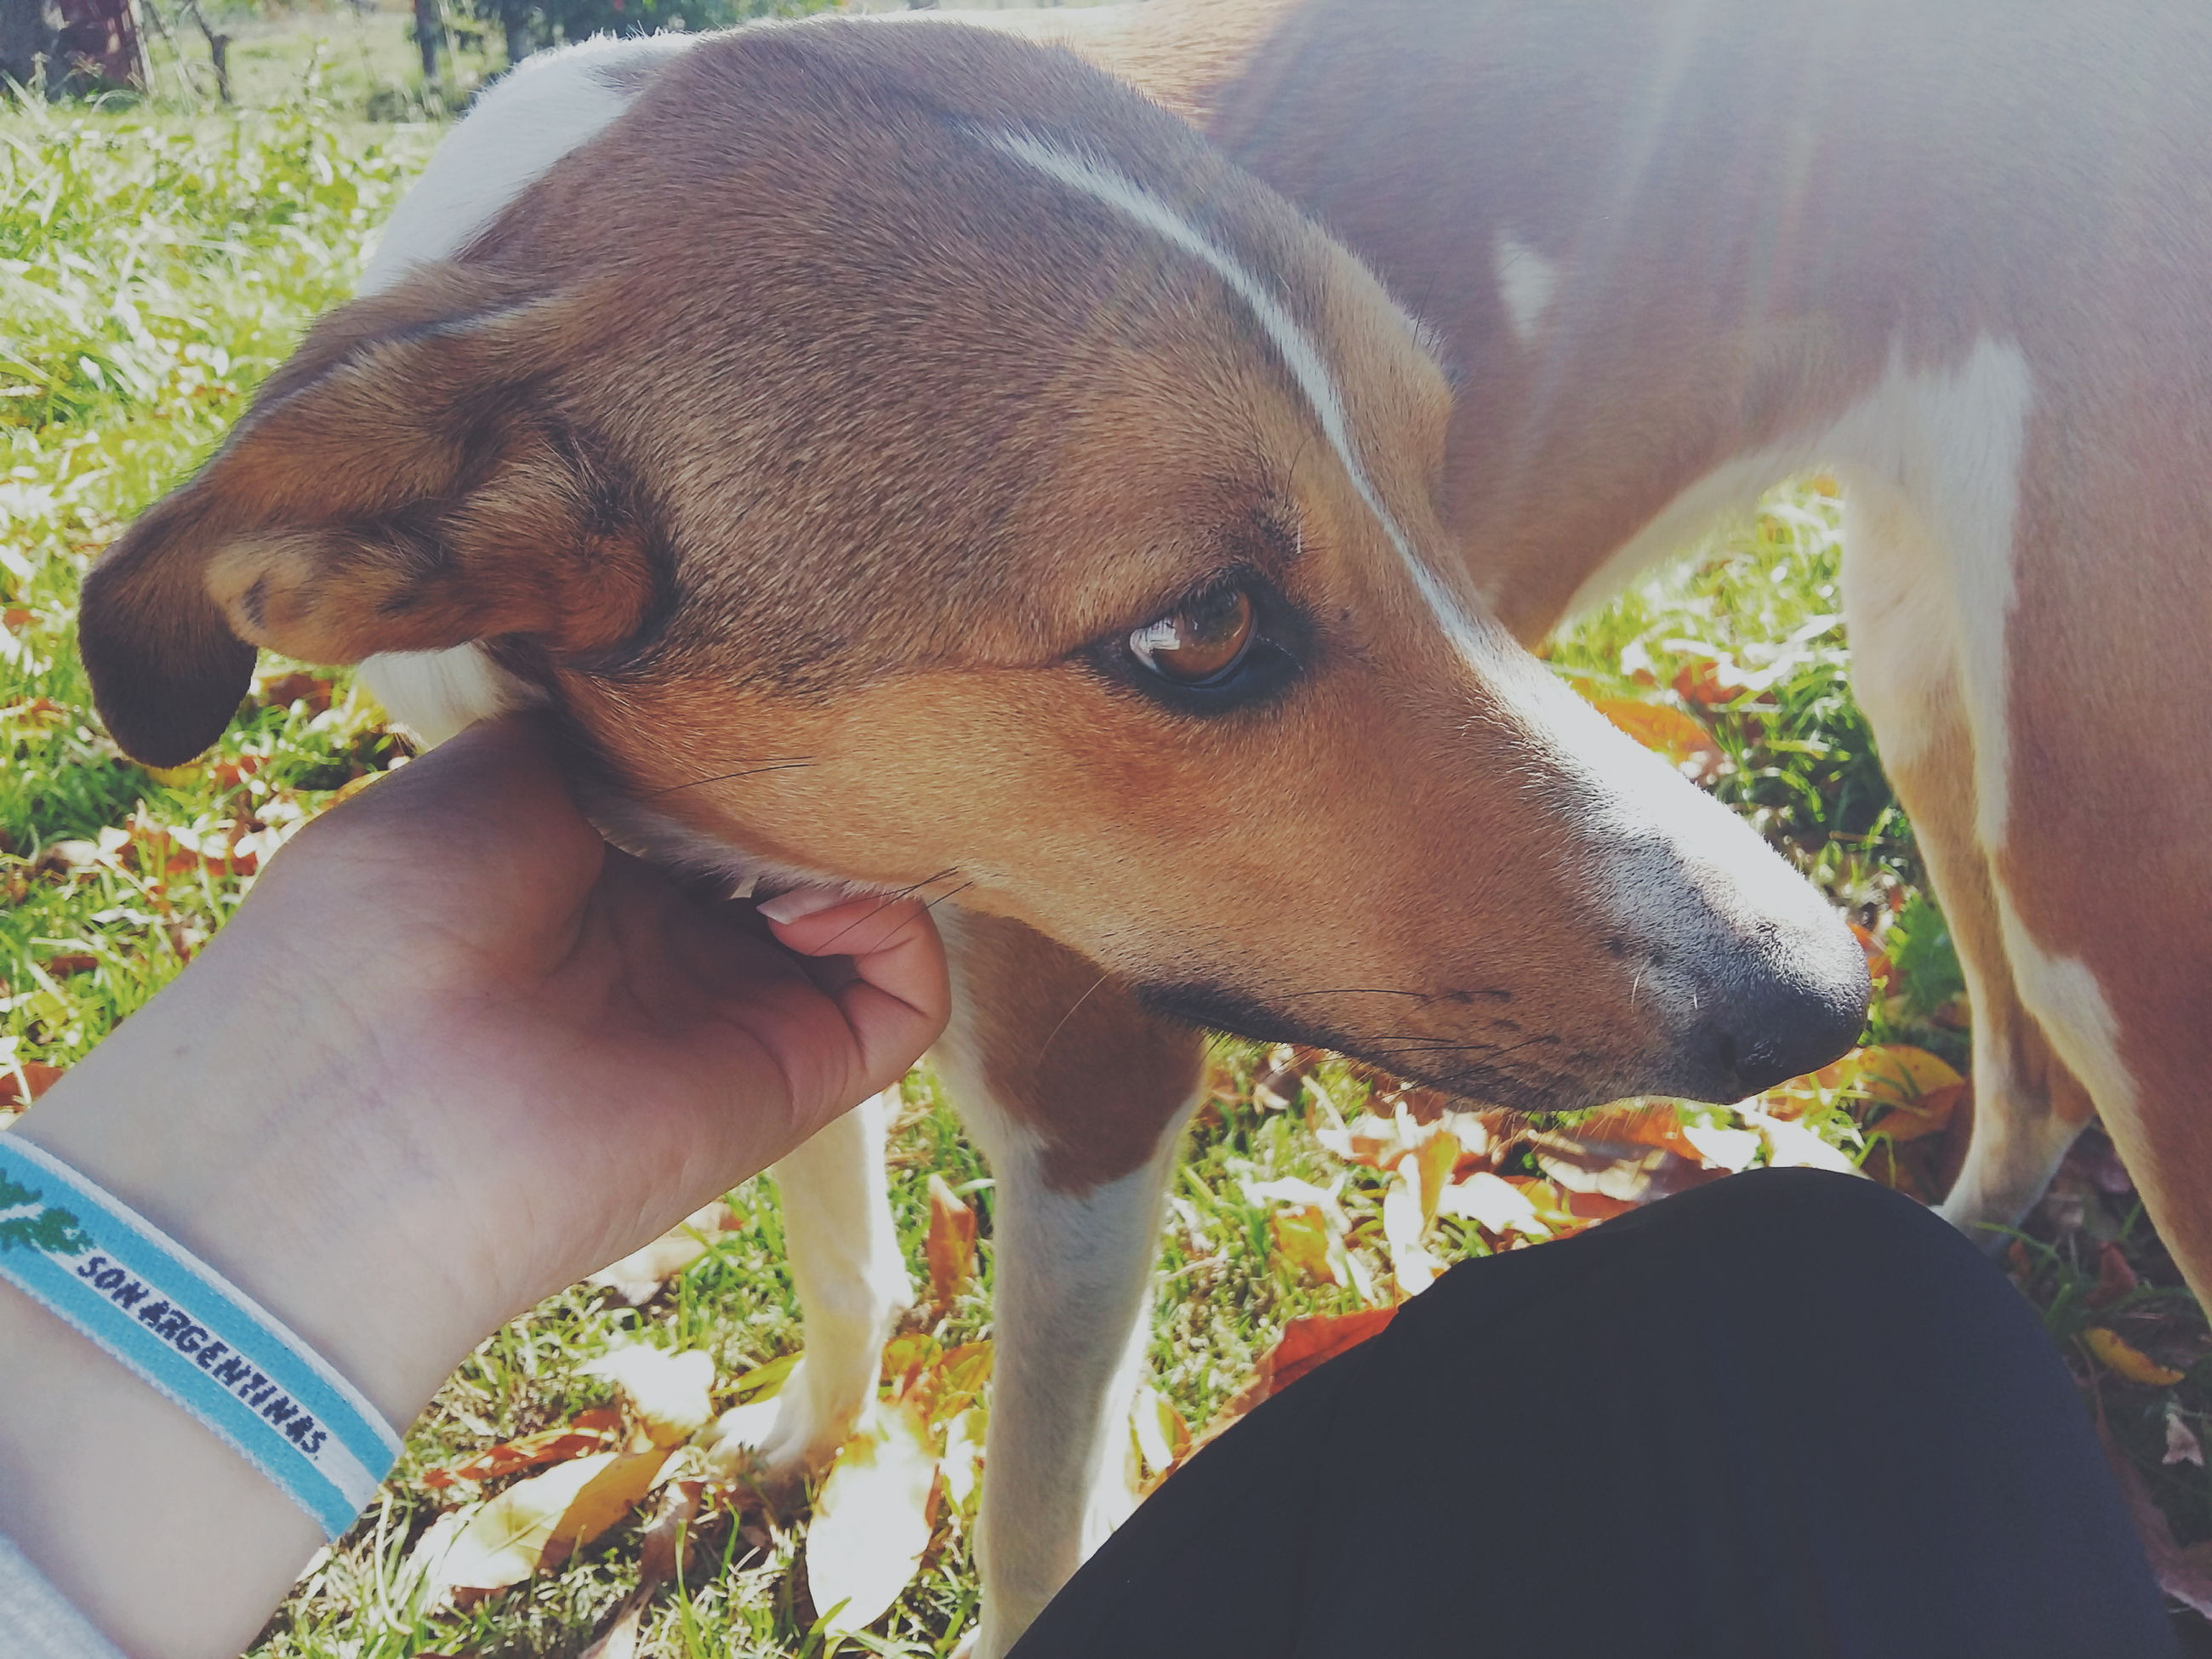 dog, pets, human hand, domestic animals, human body part, animal themes, one animal, mammal, one person, day, real people, close-up, outdoors, people